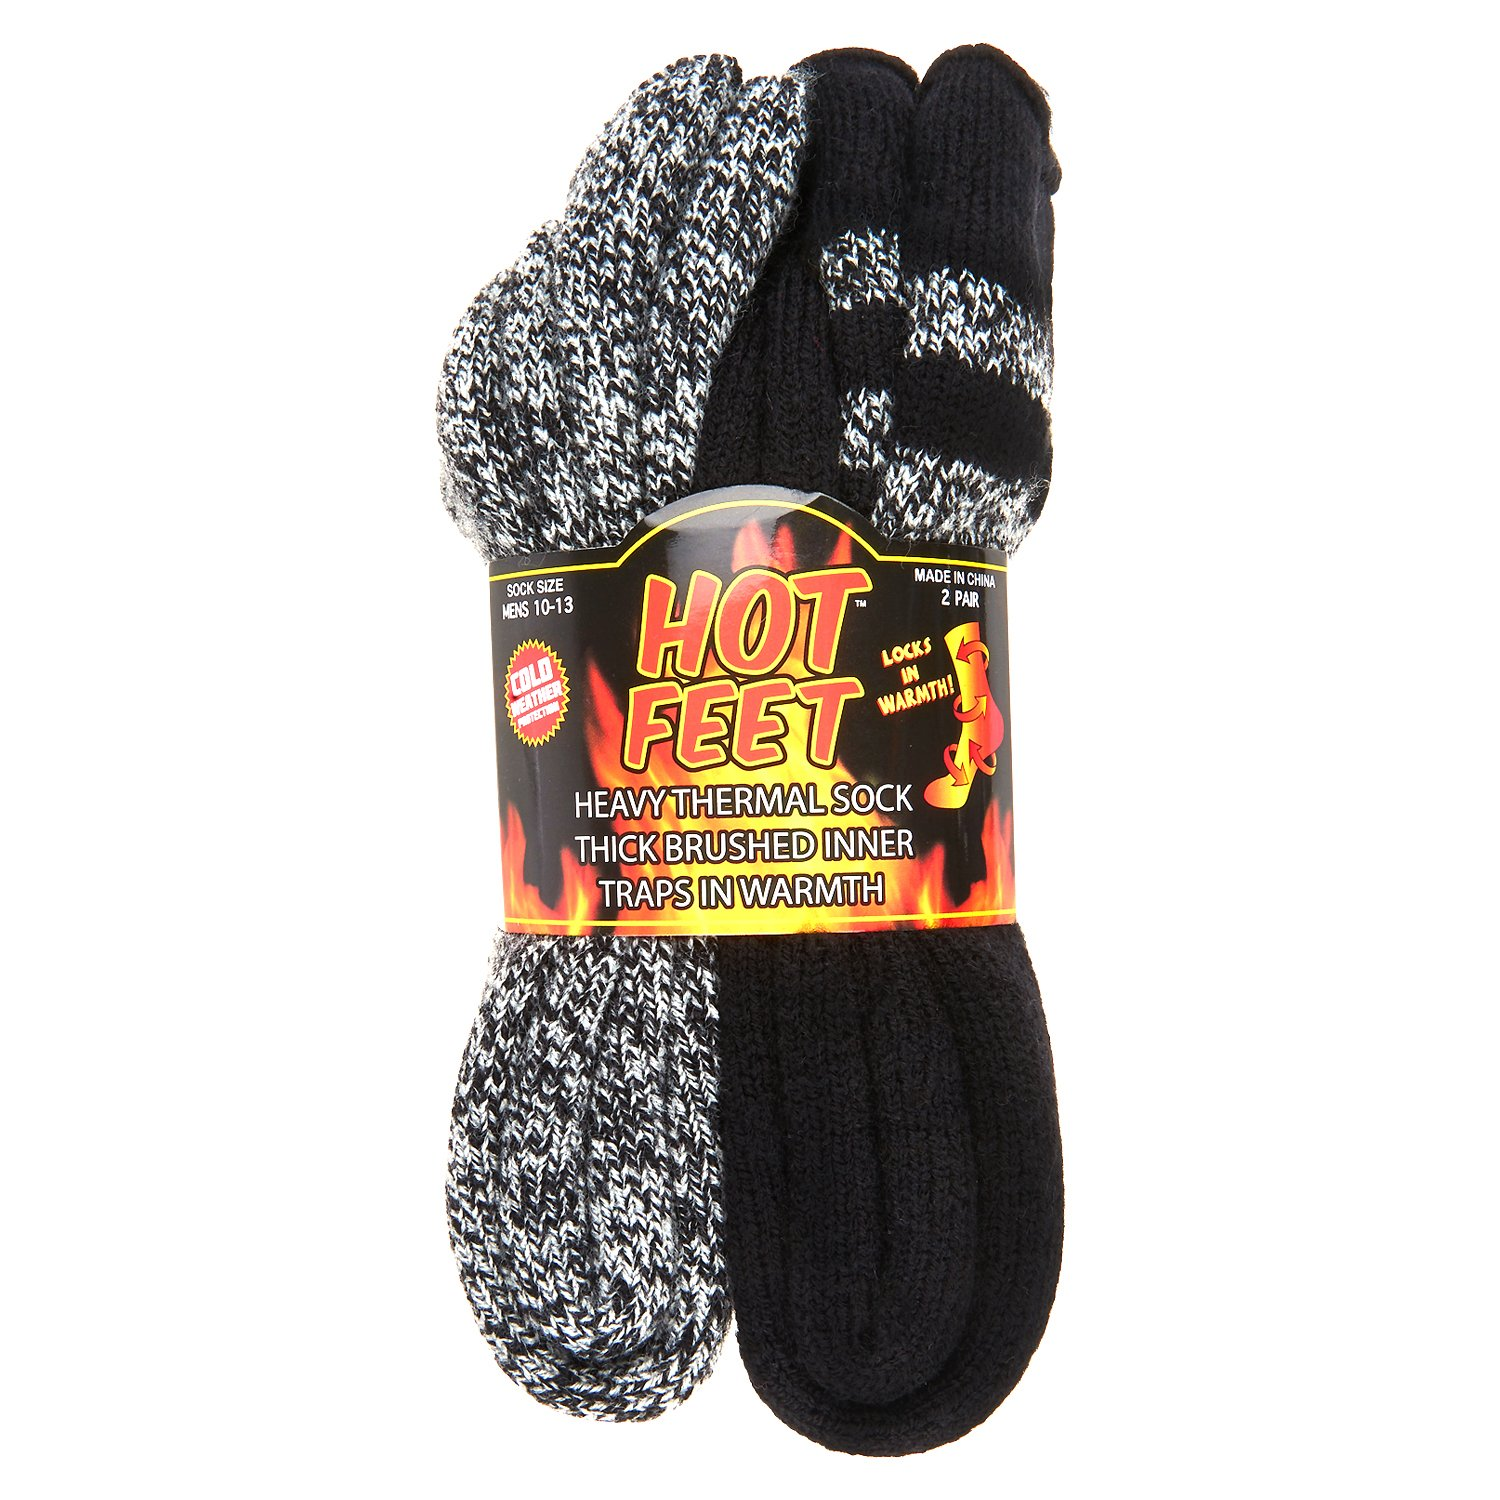 Hot Feet Men's 2 Pairs Heavy Thermal Socks - Thick Insulated Crew for Cold Weather; Size: 6-12.5 10-13